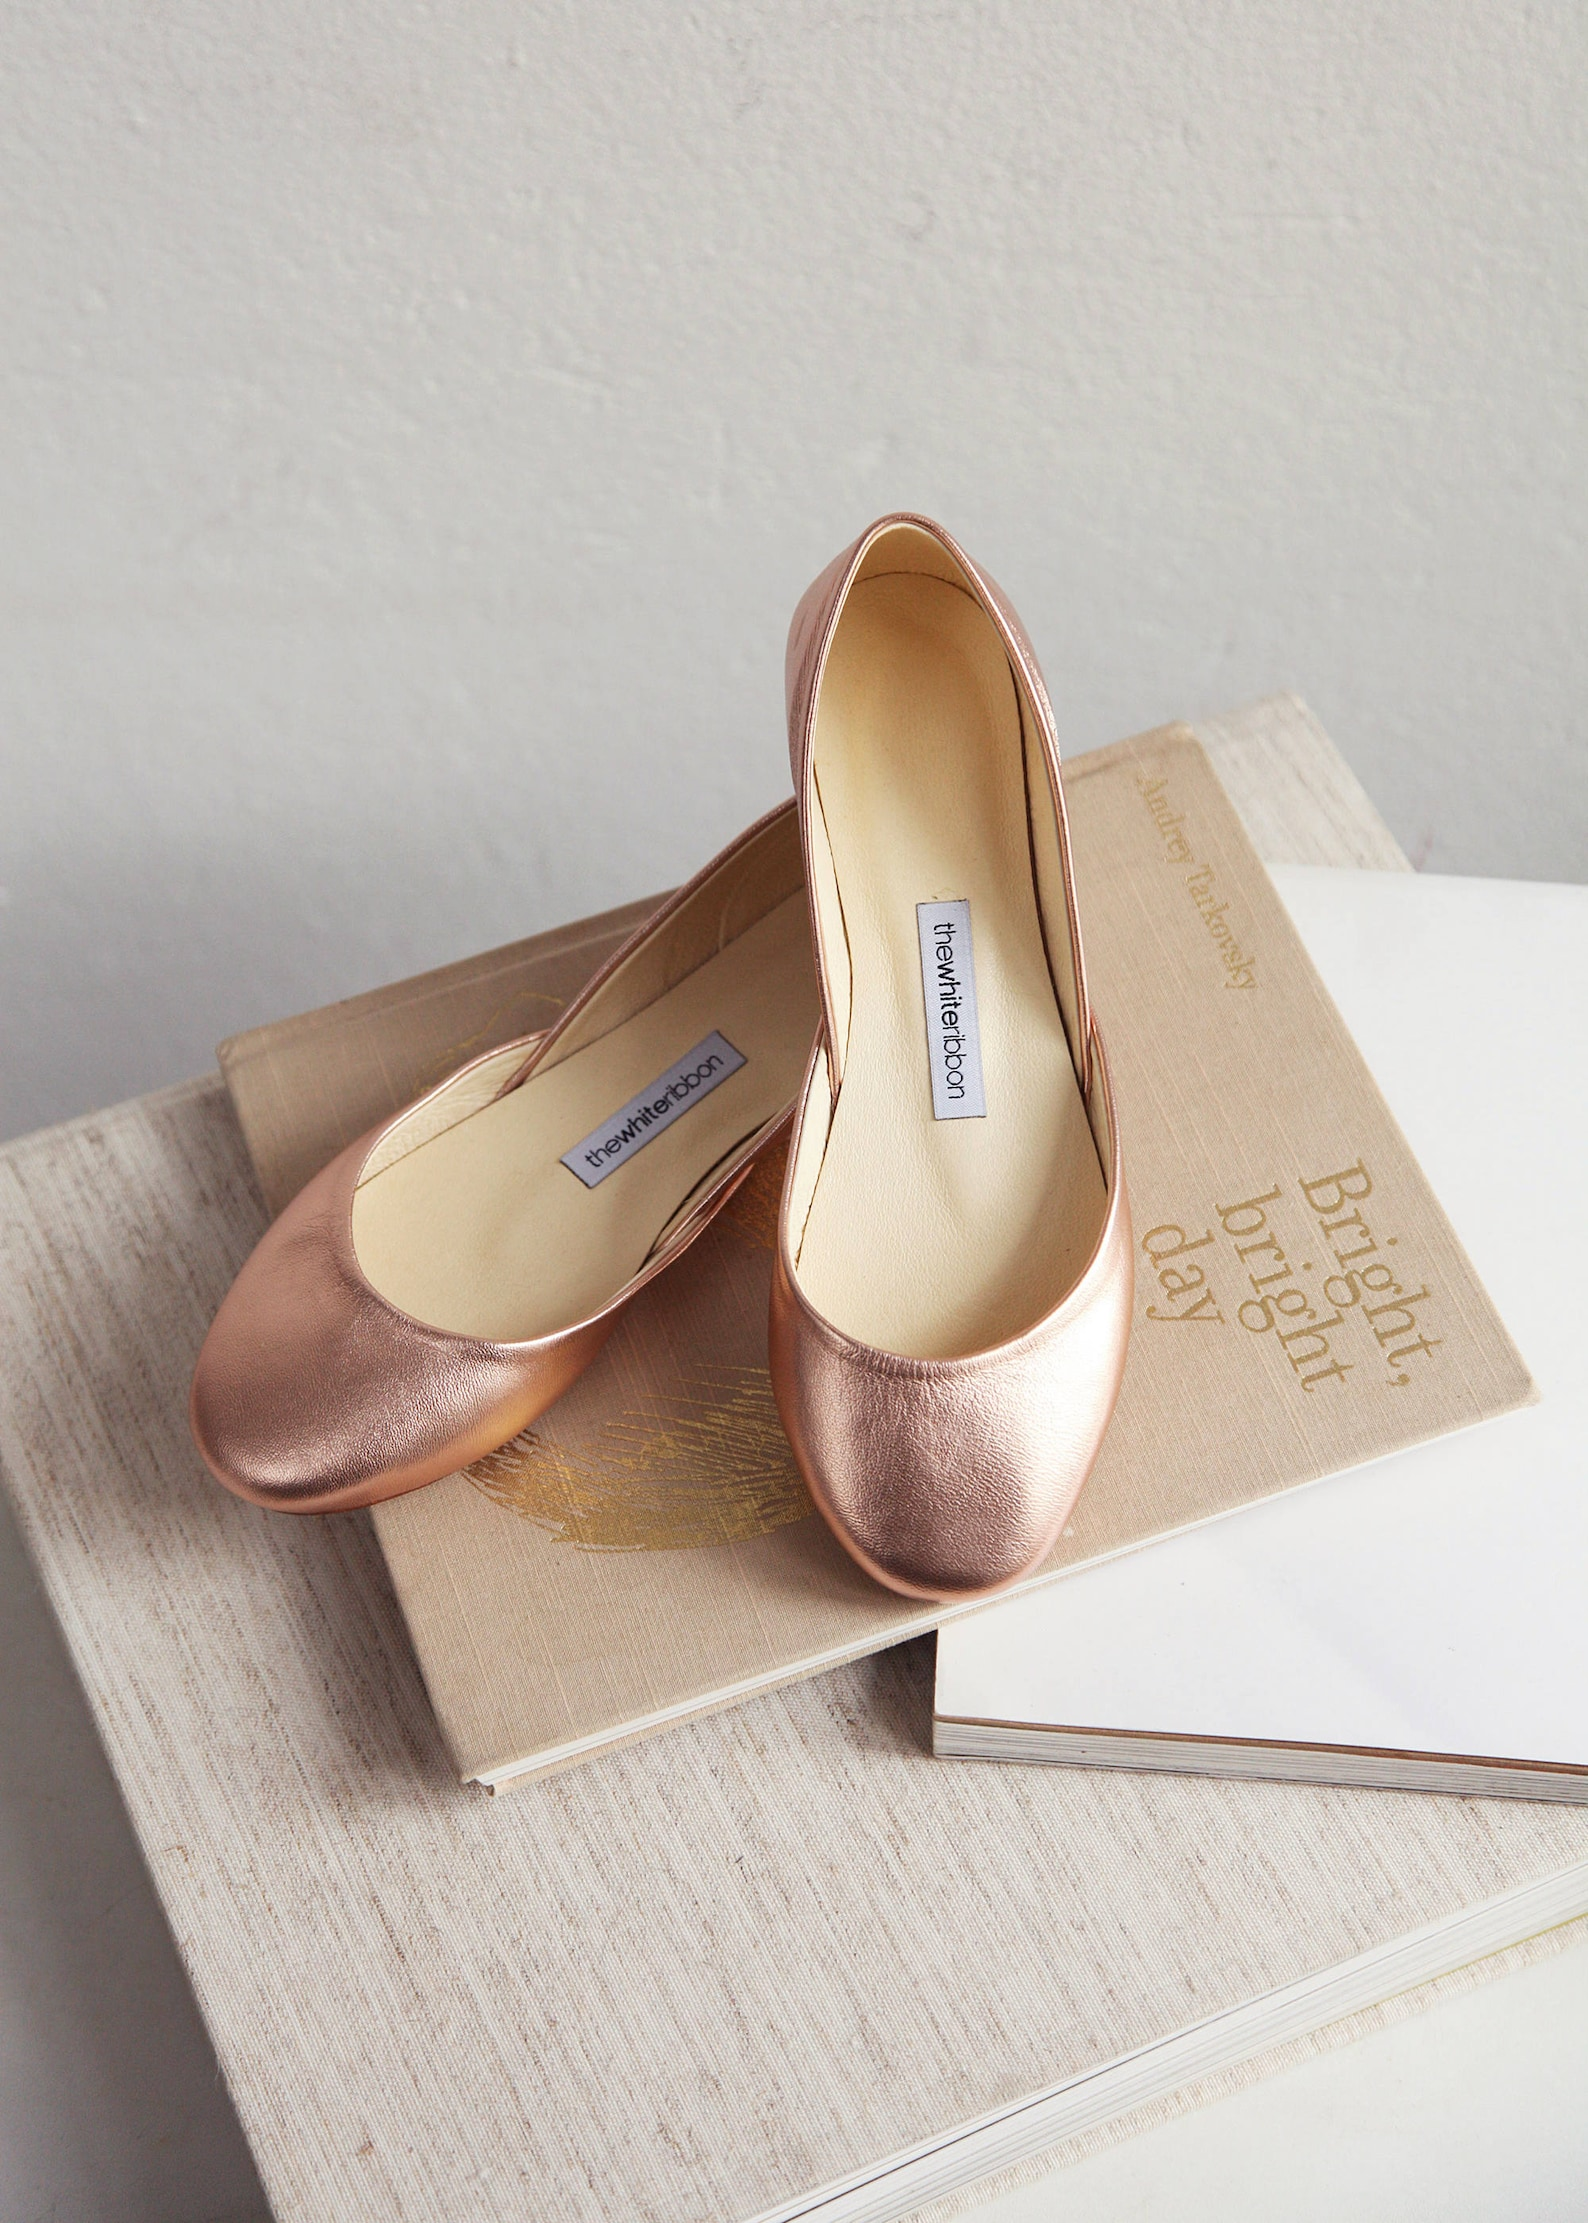 metallic rose gold ballet flats | bridal wedding shoes | pointe style shoes | classic model | standard width | rose gold | ready